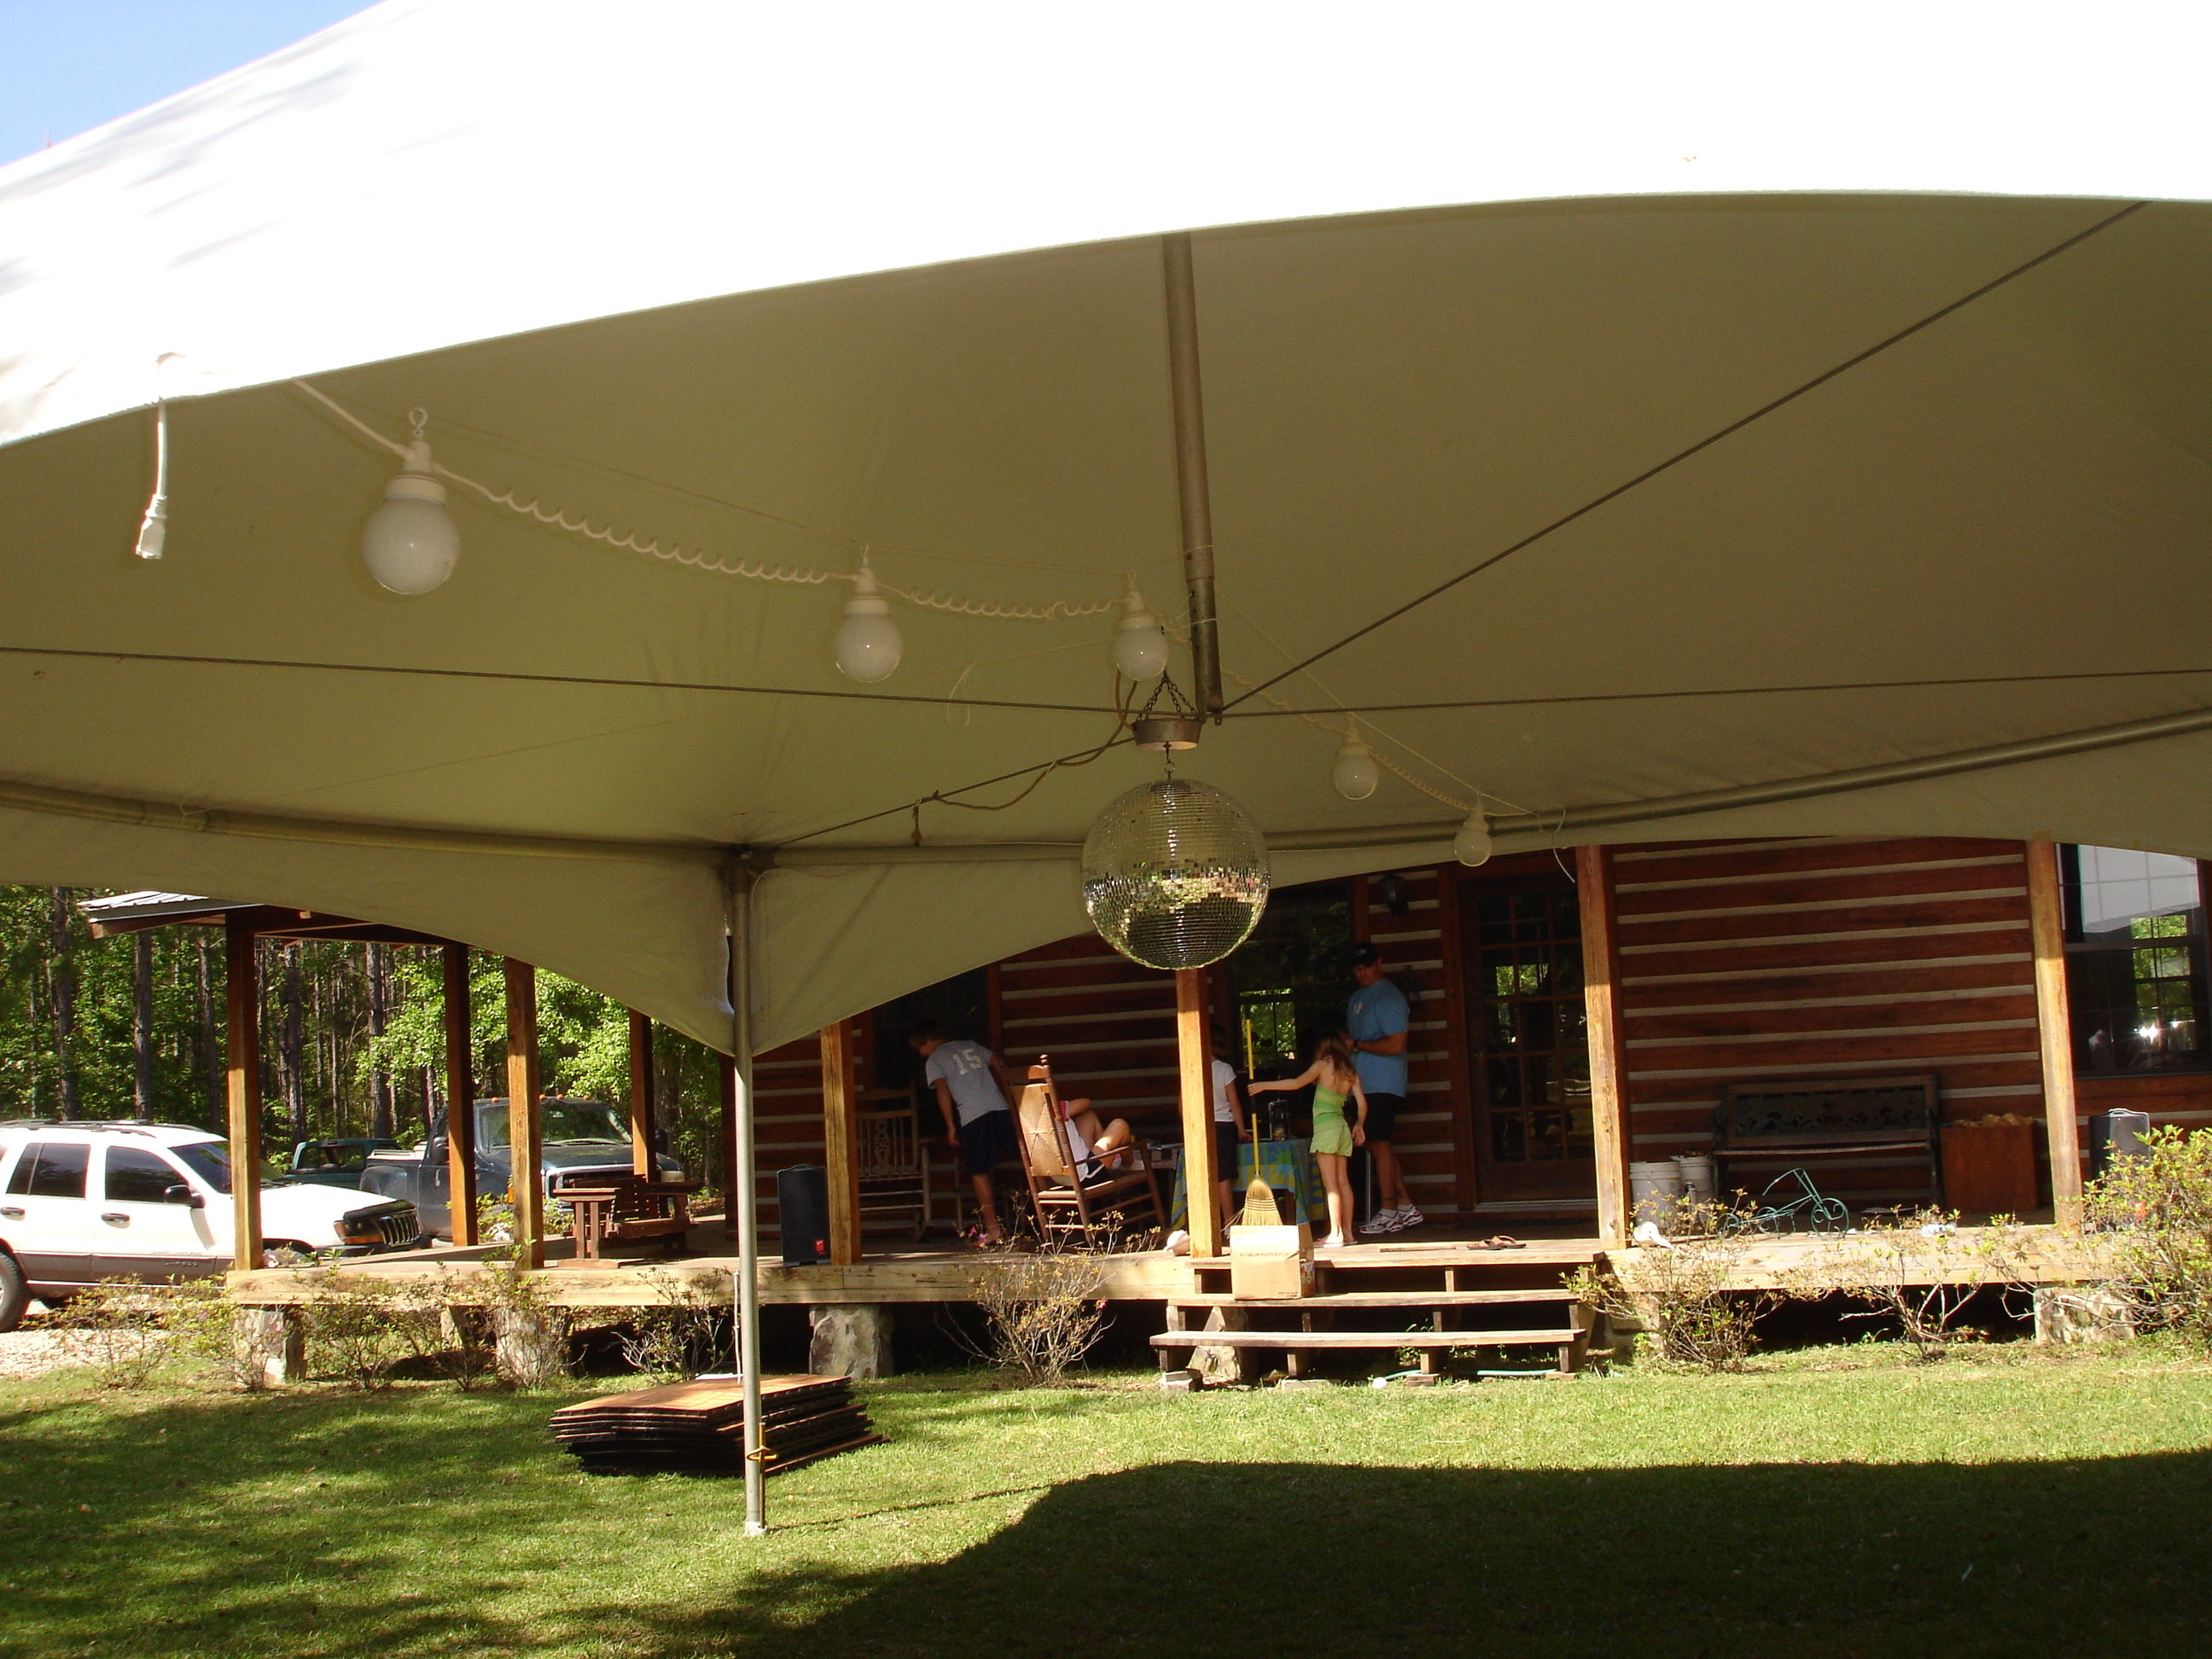 Tent - 20'x20' Interior with Discoball